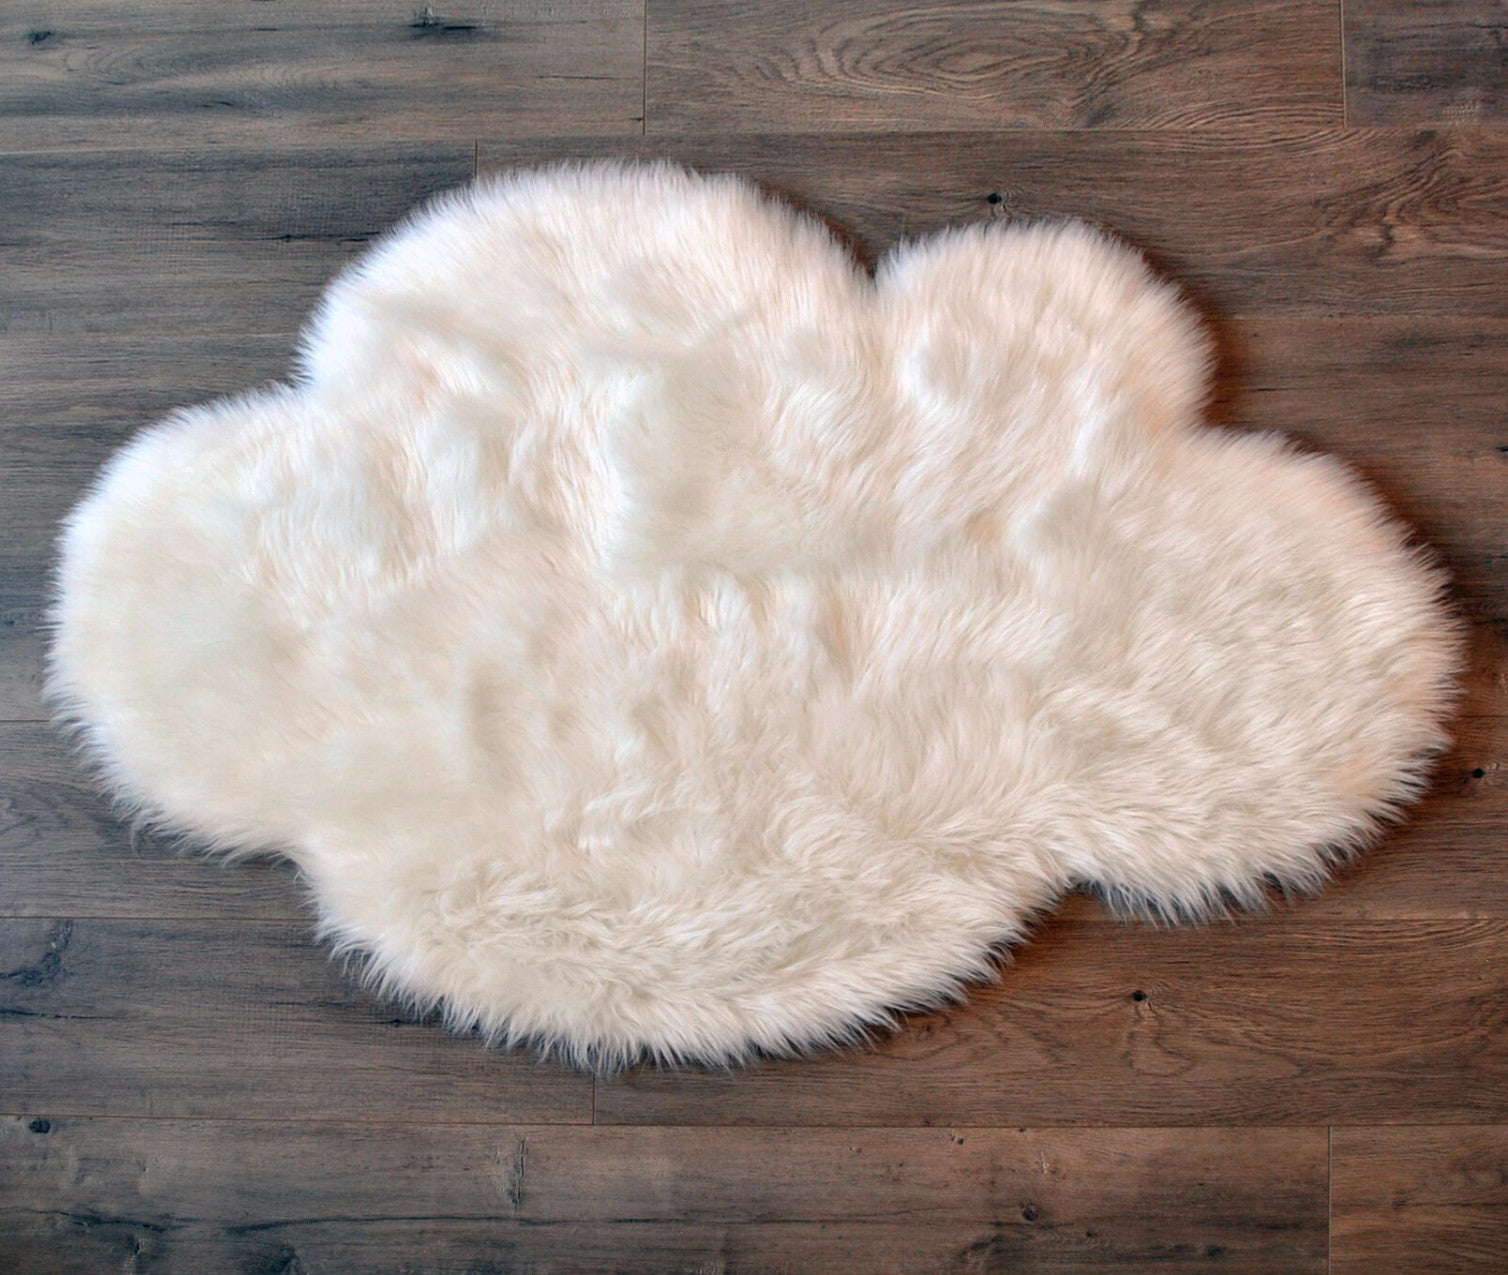 Faux Sheepskin Cloud Rug DLK Design Life Kids Unspecified 21 10d9c6a3 847f  4097 A56d 30adca691468 Faux Sheepskin Cloud Area Rug Rug Designer Cover  Letter